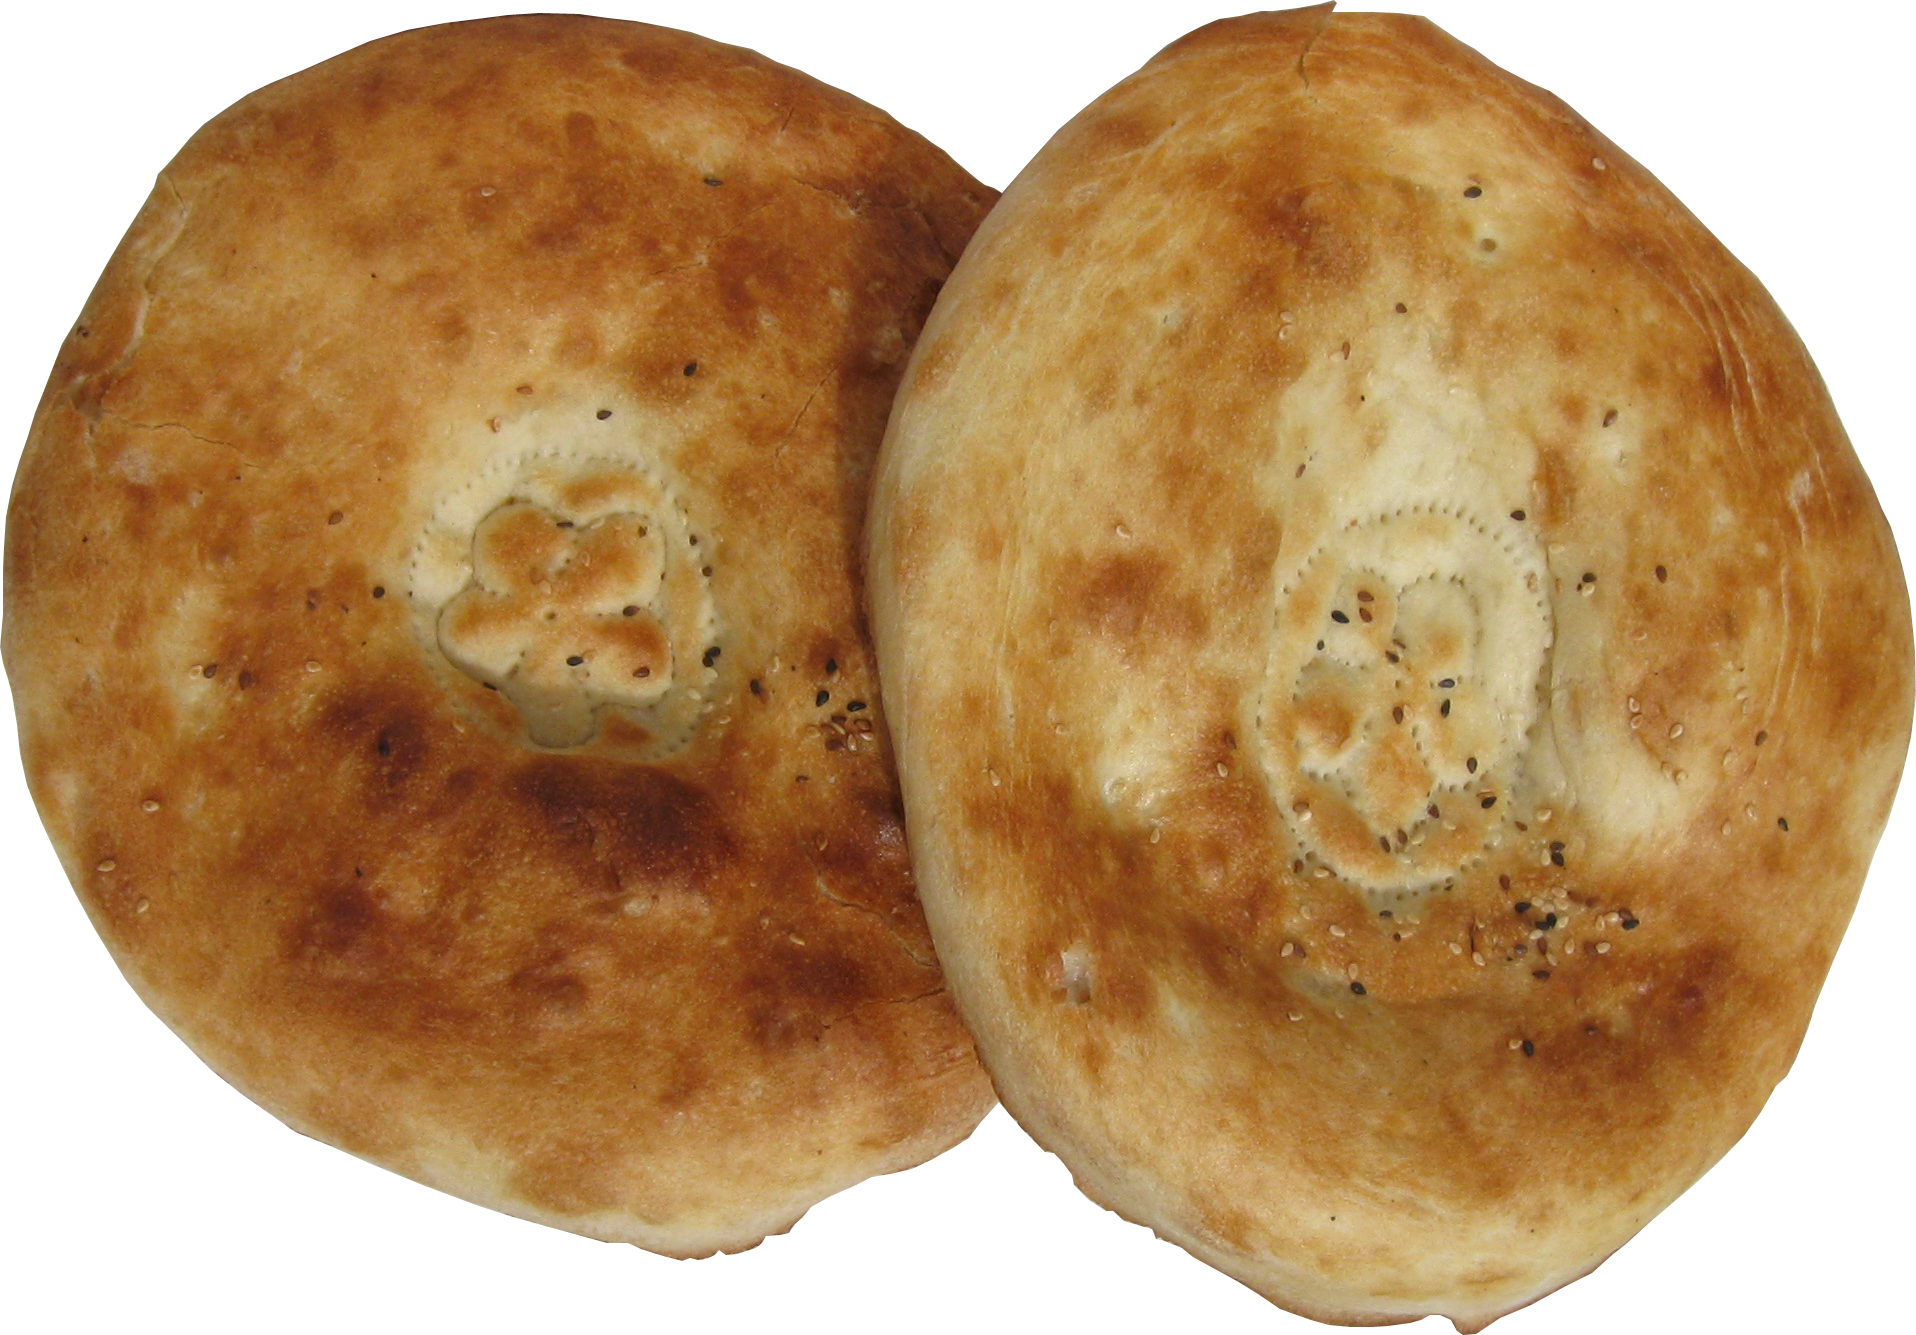 Png image free download. Grains clipart bread pastry production